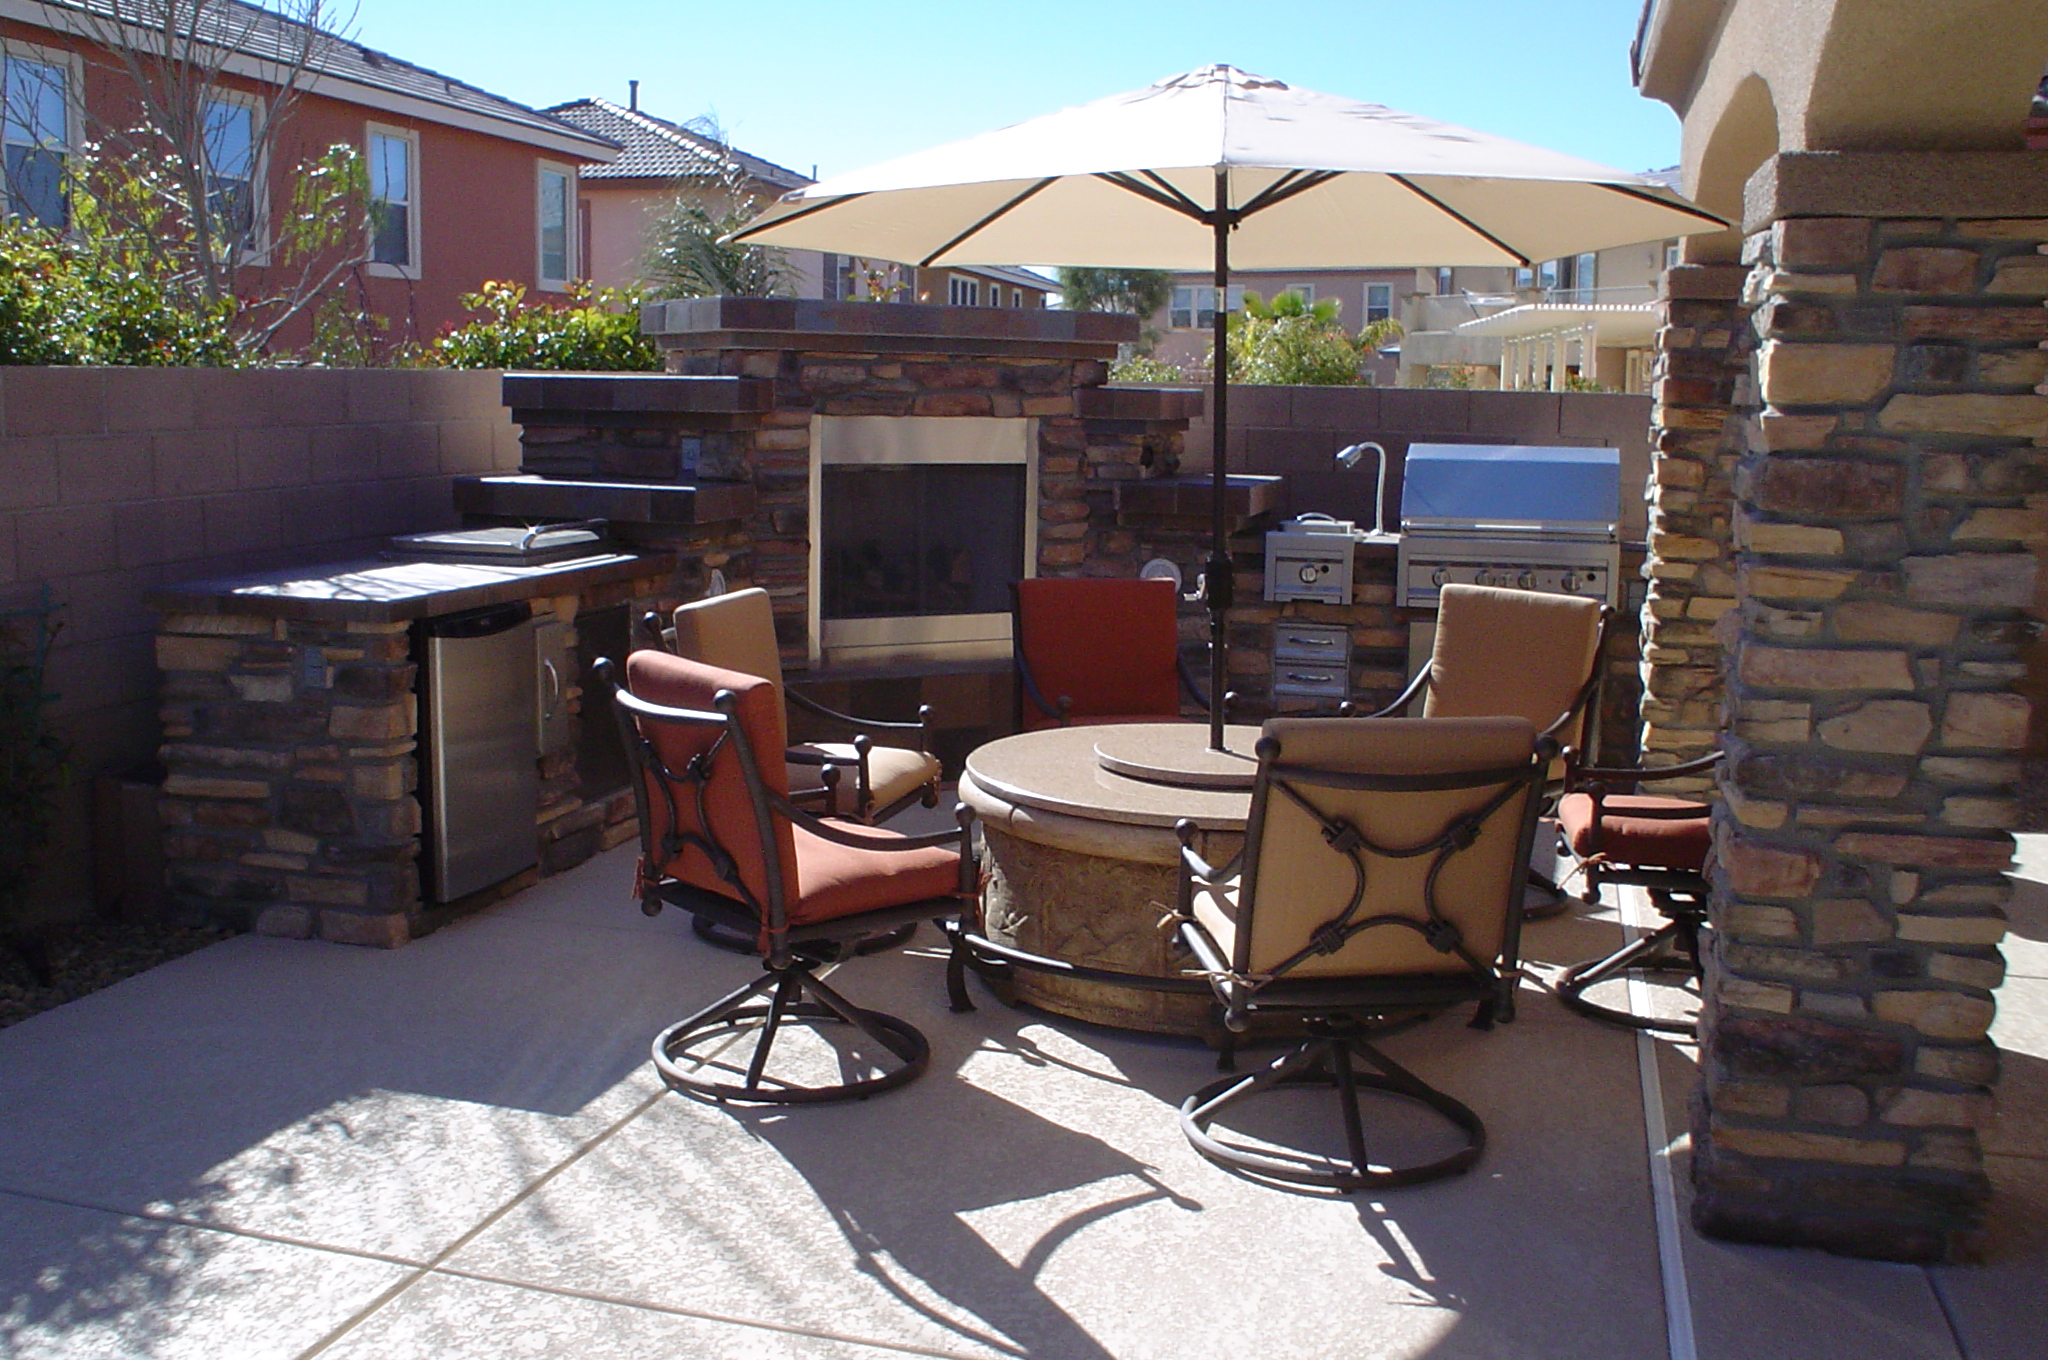 outdoor kitchens las vegas kohler kitchen faucet parts we design custom and barbecue islands